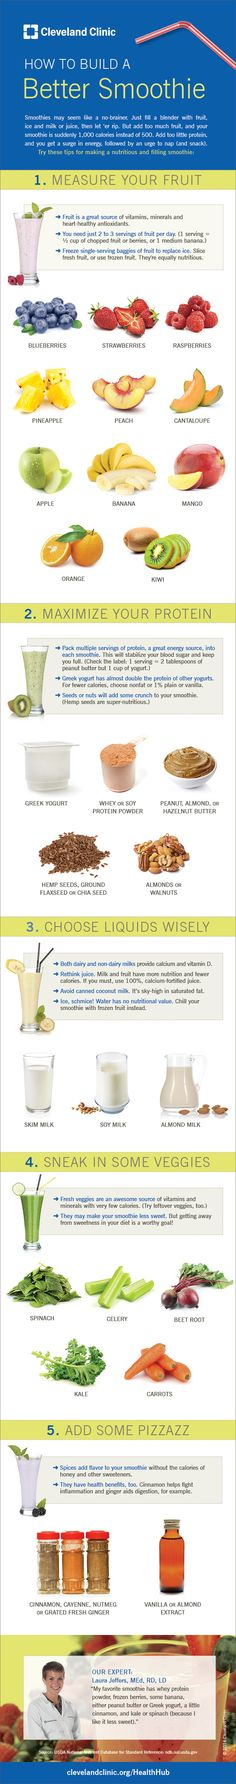 5 Ways to Build a Super Healthy Smoothie